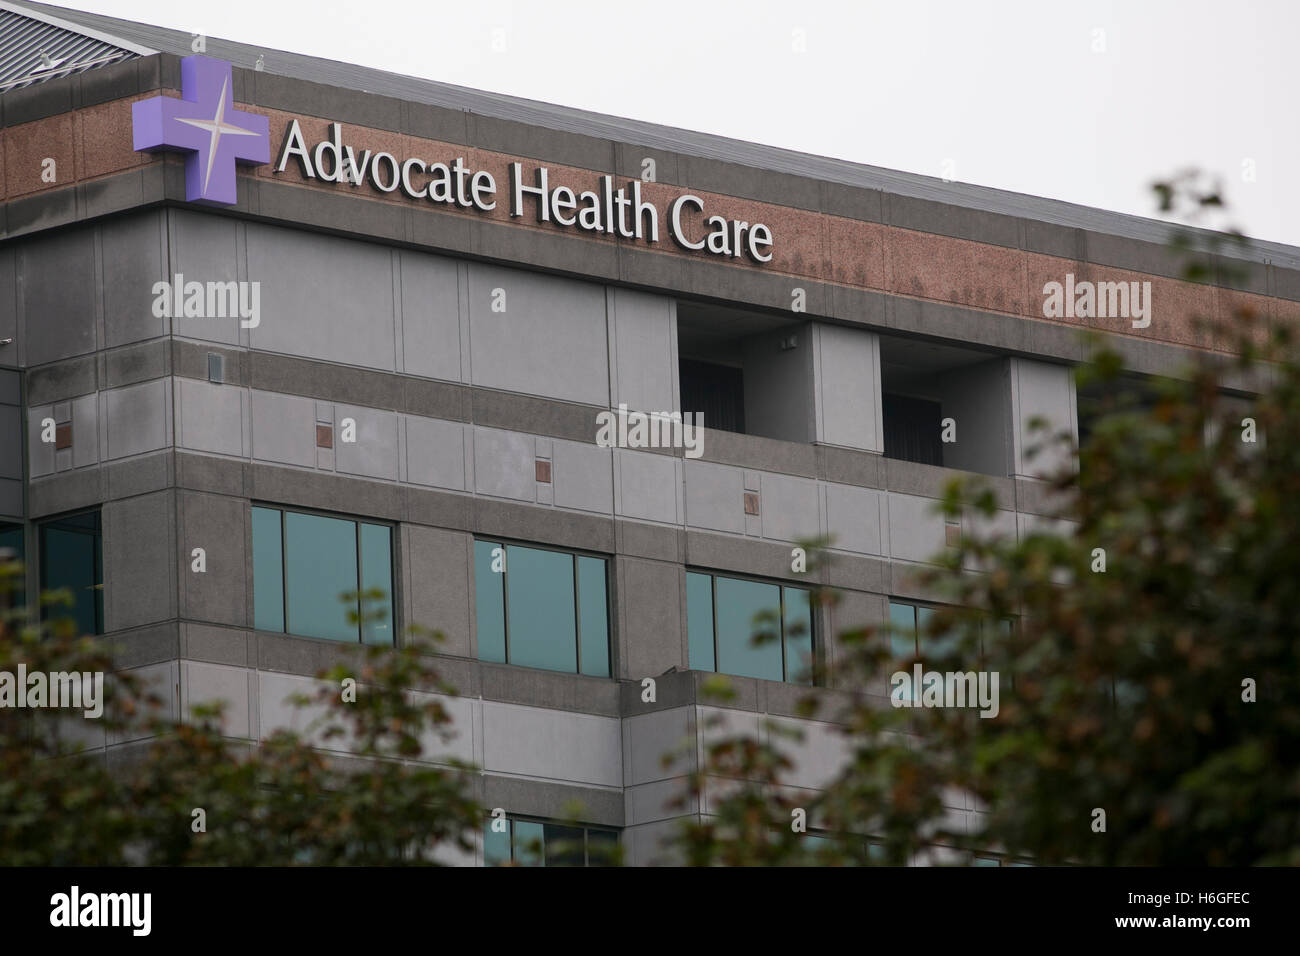 A logo sign outside of the headquarters of Advocate Health Care in Downers Grove, Illinois on October 15, 2016. - Stock Image